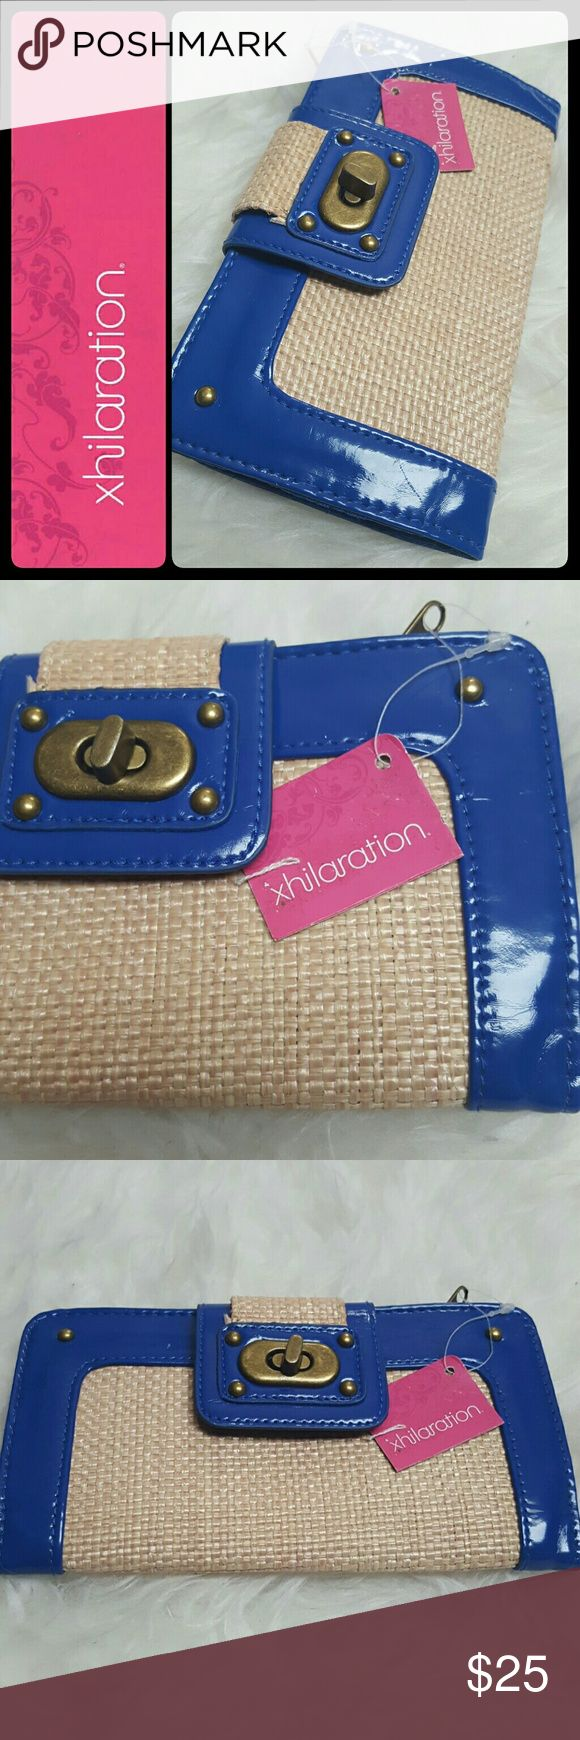 Xhilaration Straw Wallet New Xhilaration Signature Brand Wallet in Gorgeous Royal Blue and Straw Style! Brass Tone Hardware, Interior Has  Multiple Compartments with Card Slots and Zipper Pocket! Also with ID Window, Approx Size 7.5x4 Inches, NEW! Xhilaration Bags Wallets